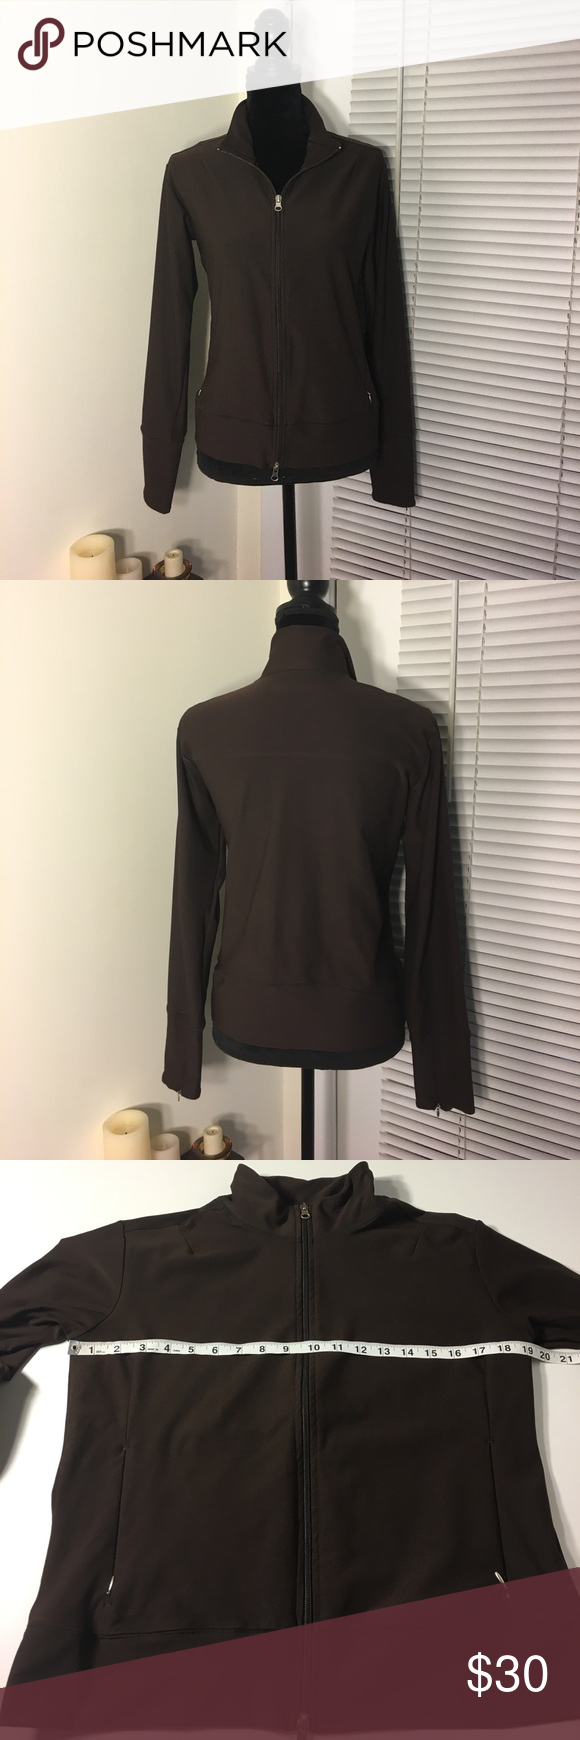 Lucy full zip jacket Micropoly full zip sweatshirt/jacket from Lucy. Rich chocolate brown color with mock neck style. Double front zipper, and zippers on the sleeves to vent. Two zip close front pockets. Lucy Tops Sweatshirts & Hoodies